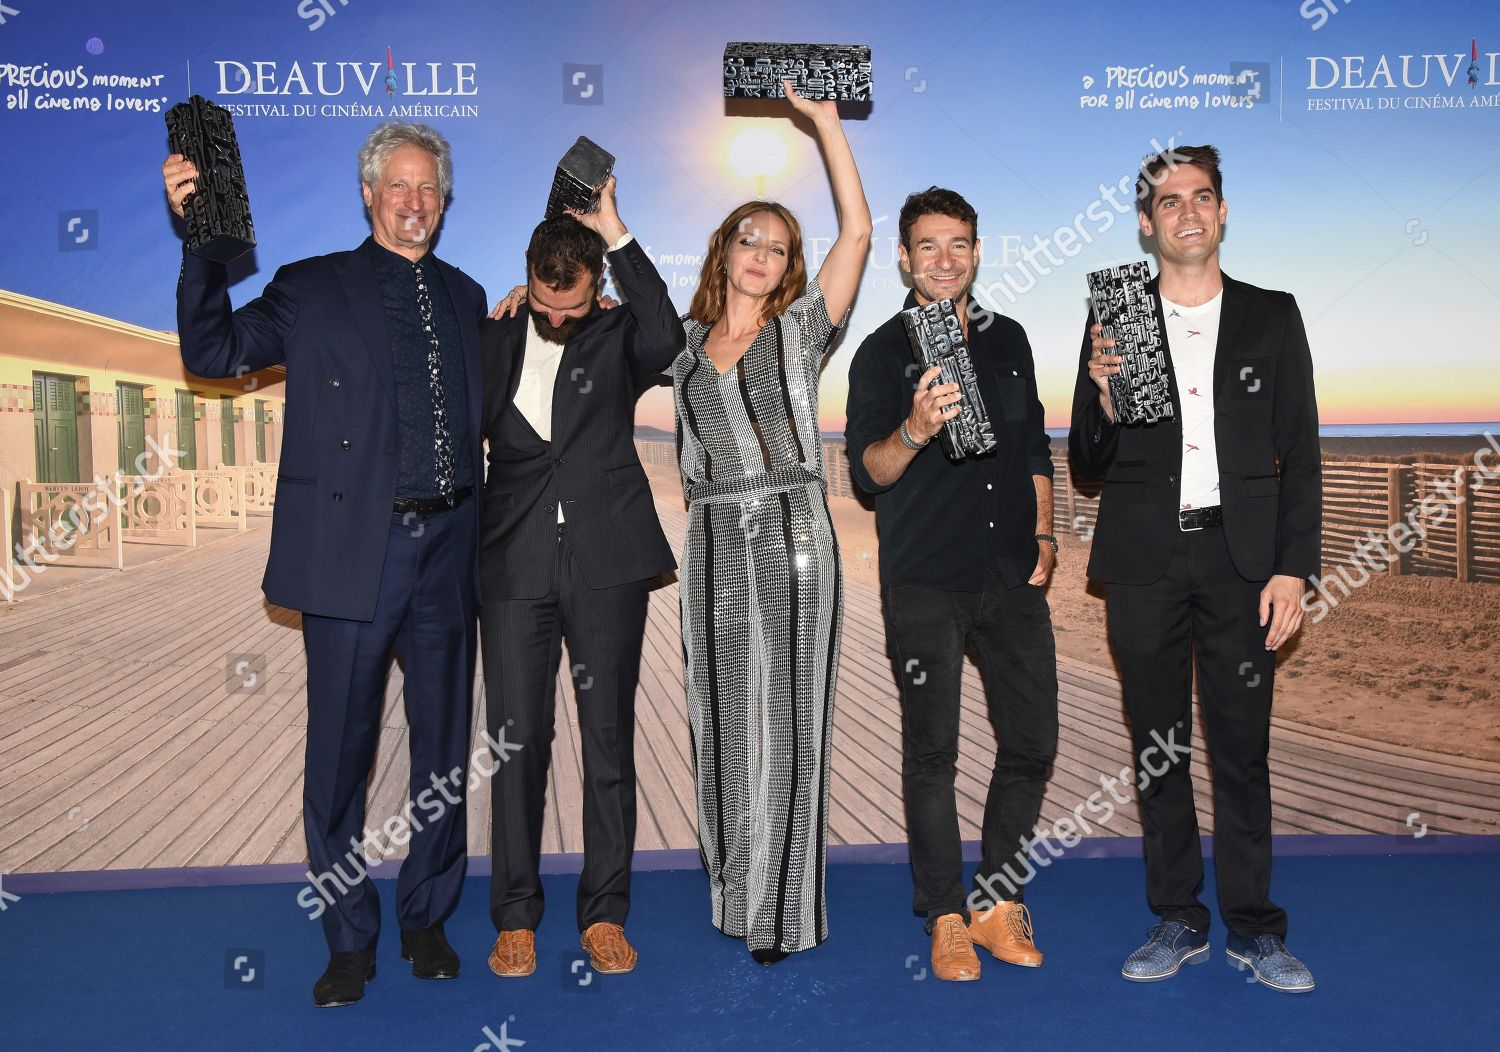 Stock photo of Award Winners photocall, 44th Deauville American Film Festival, France - 08 Sep 2018